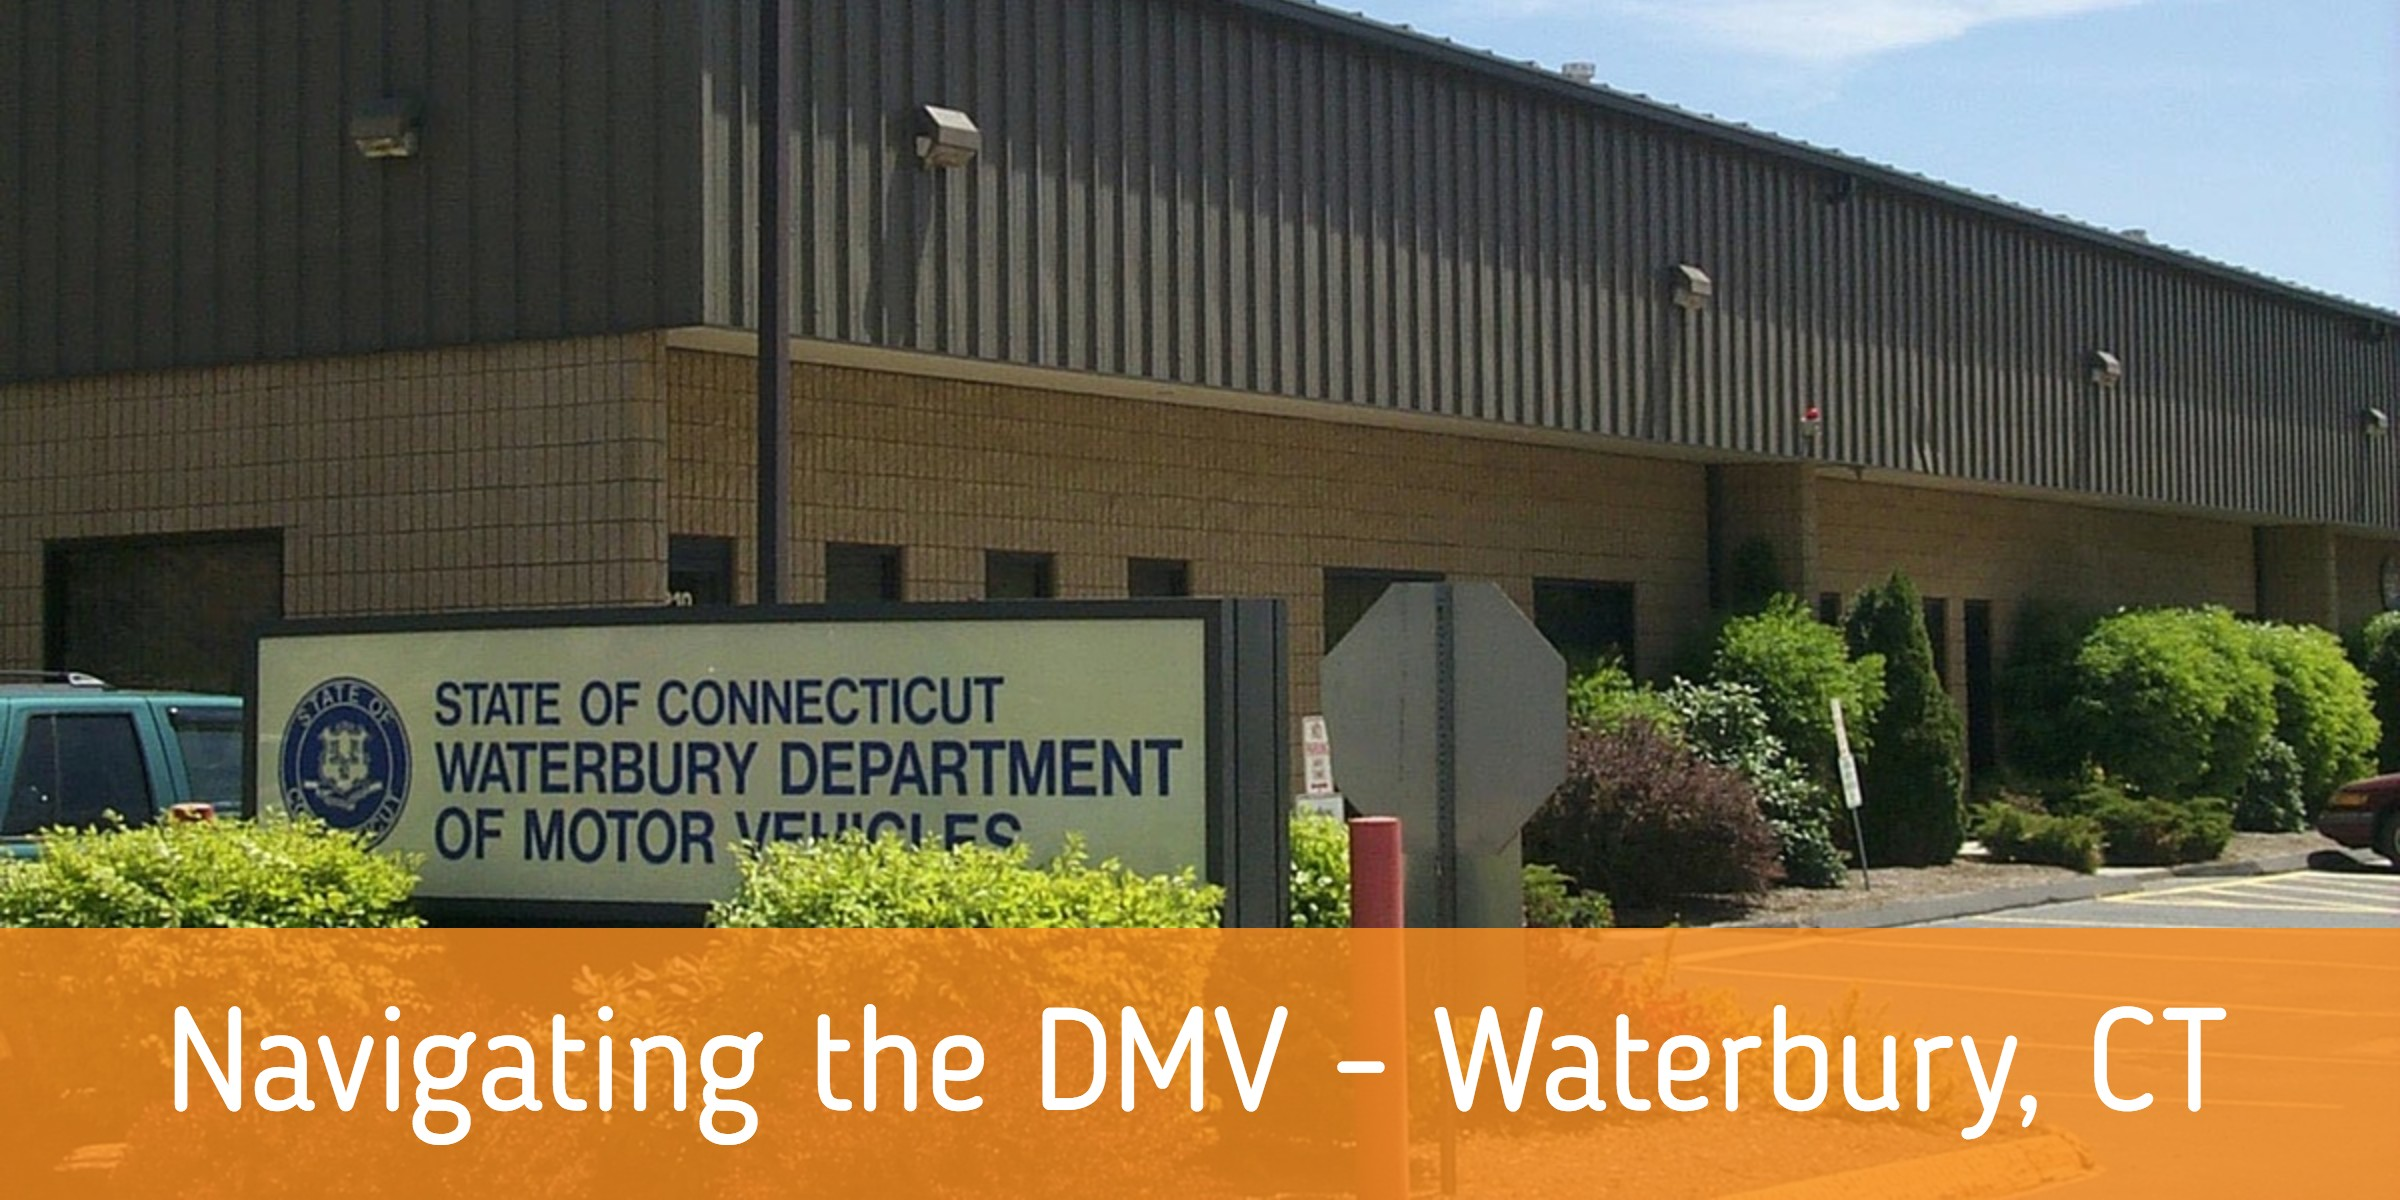 Navigating_the_DMV_-_Waterbury_CT.jpg